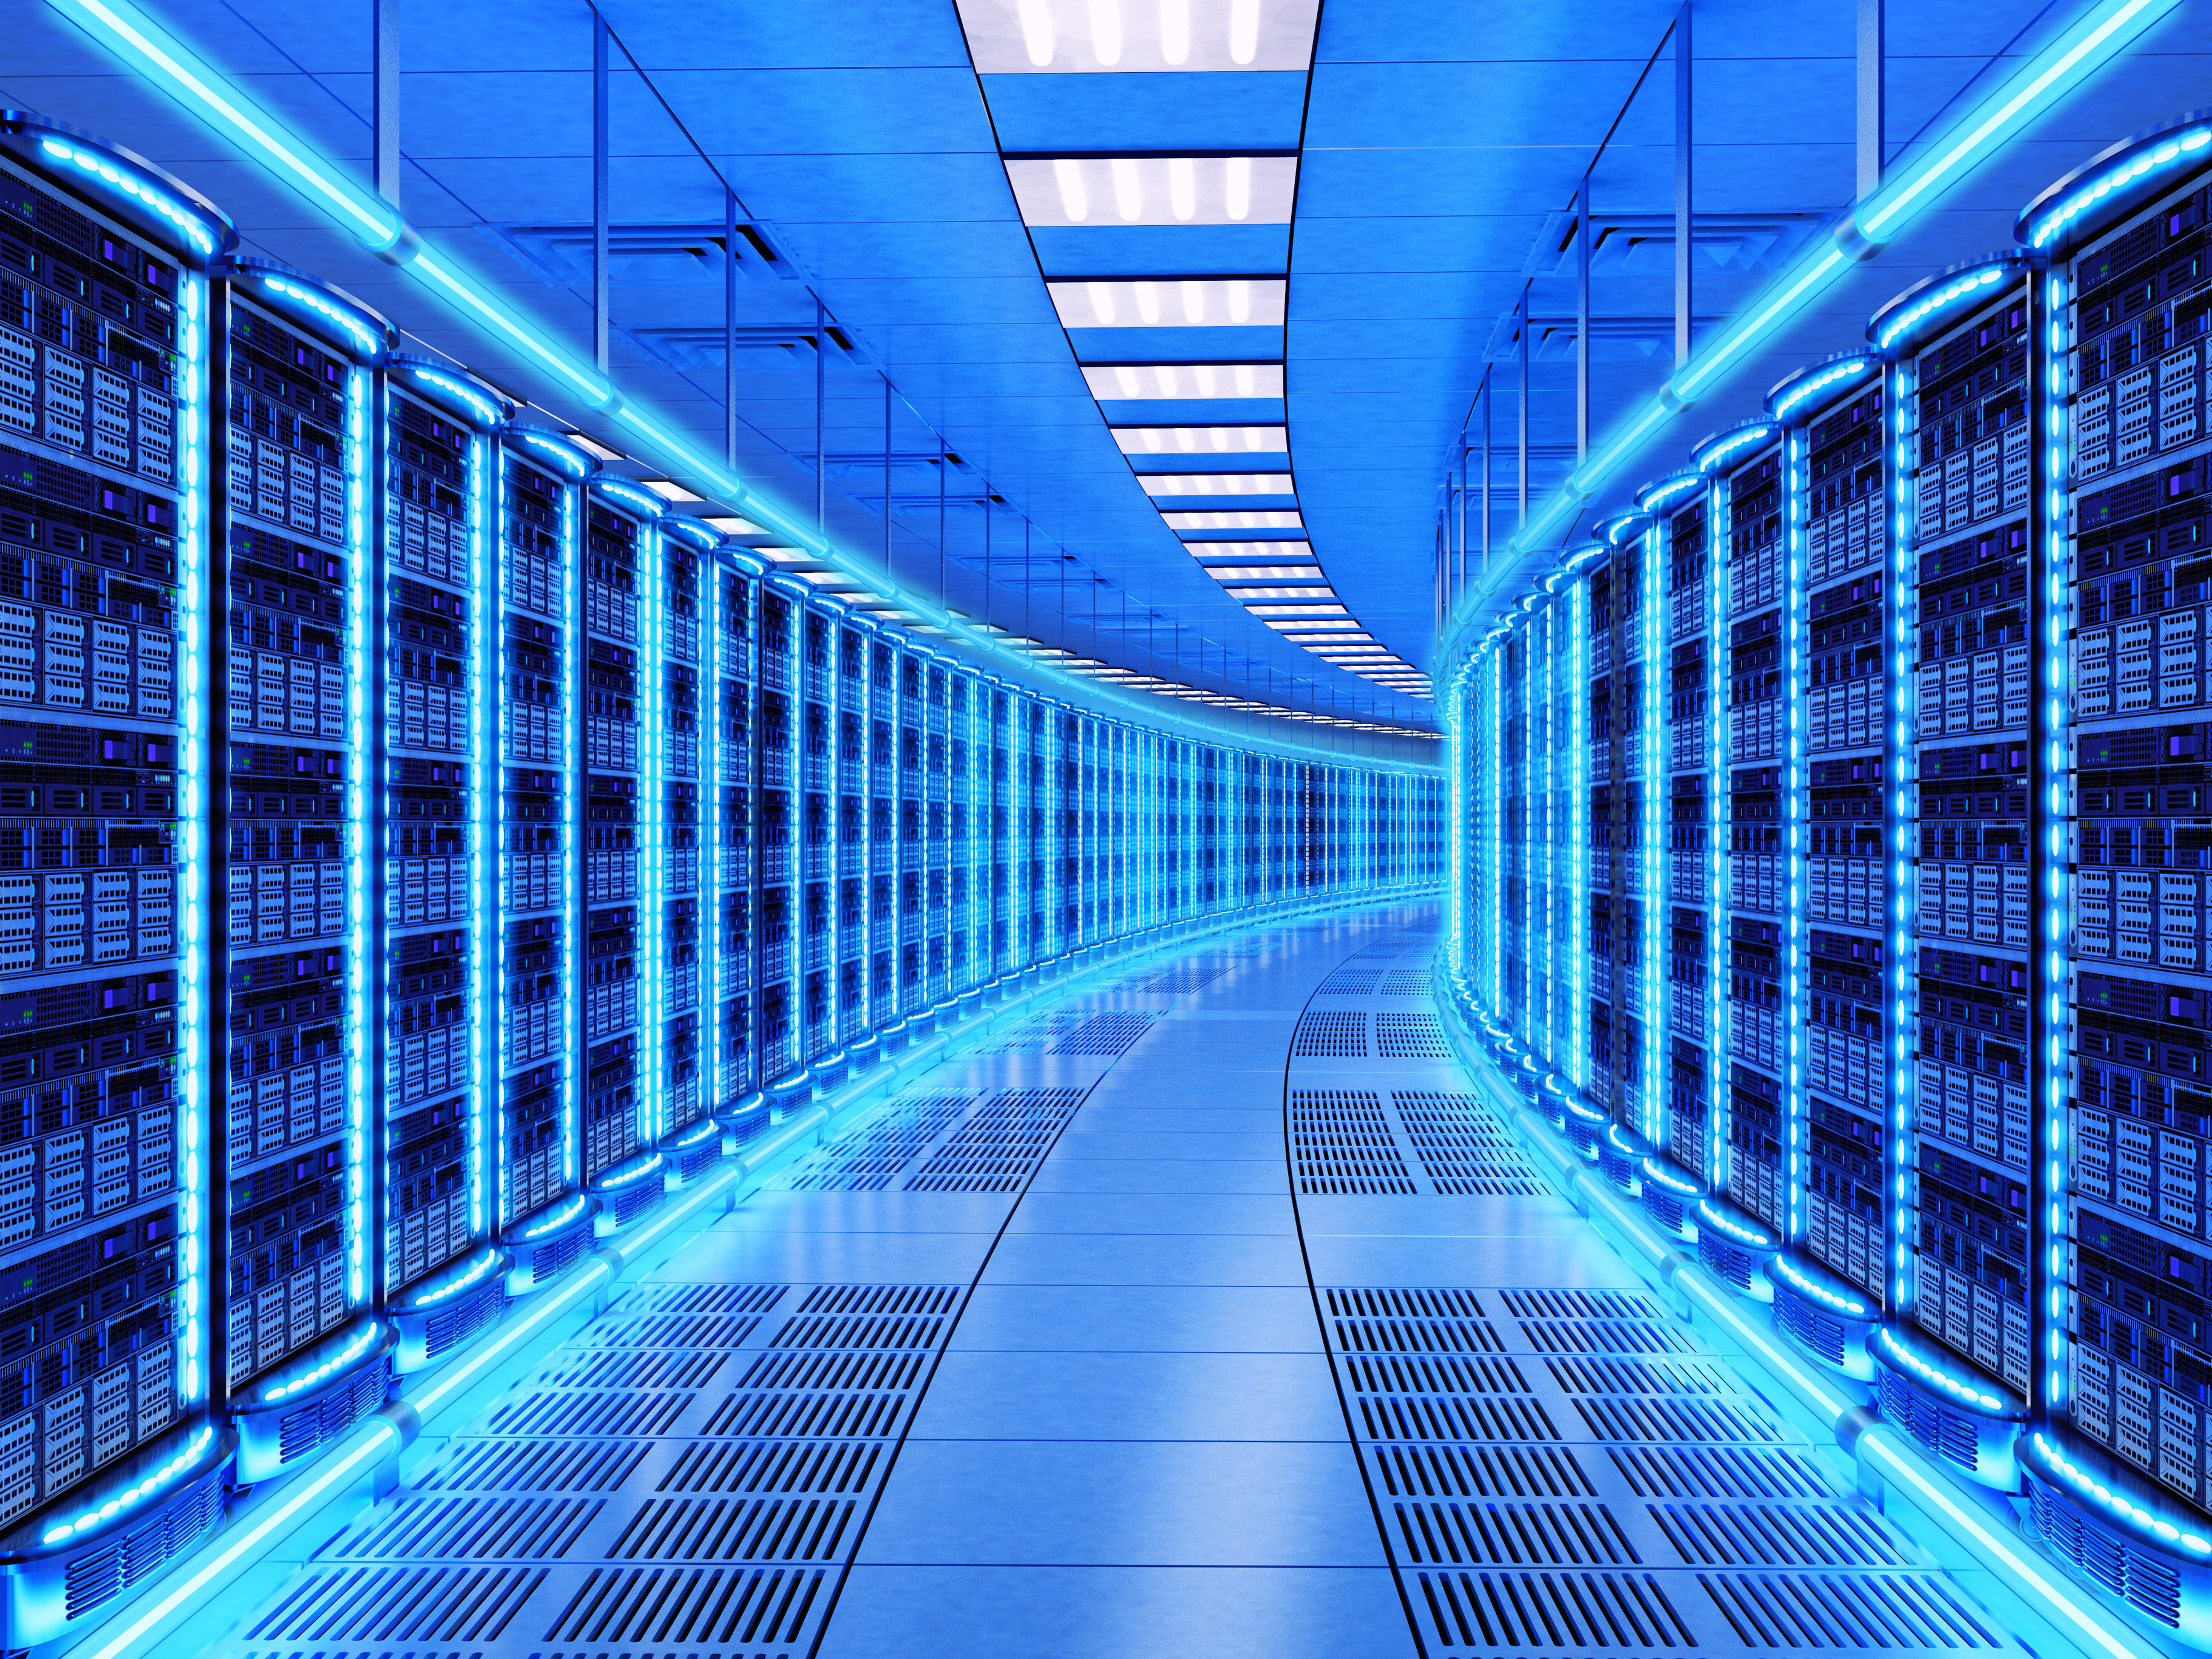 Image of a datacenter